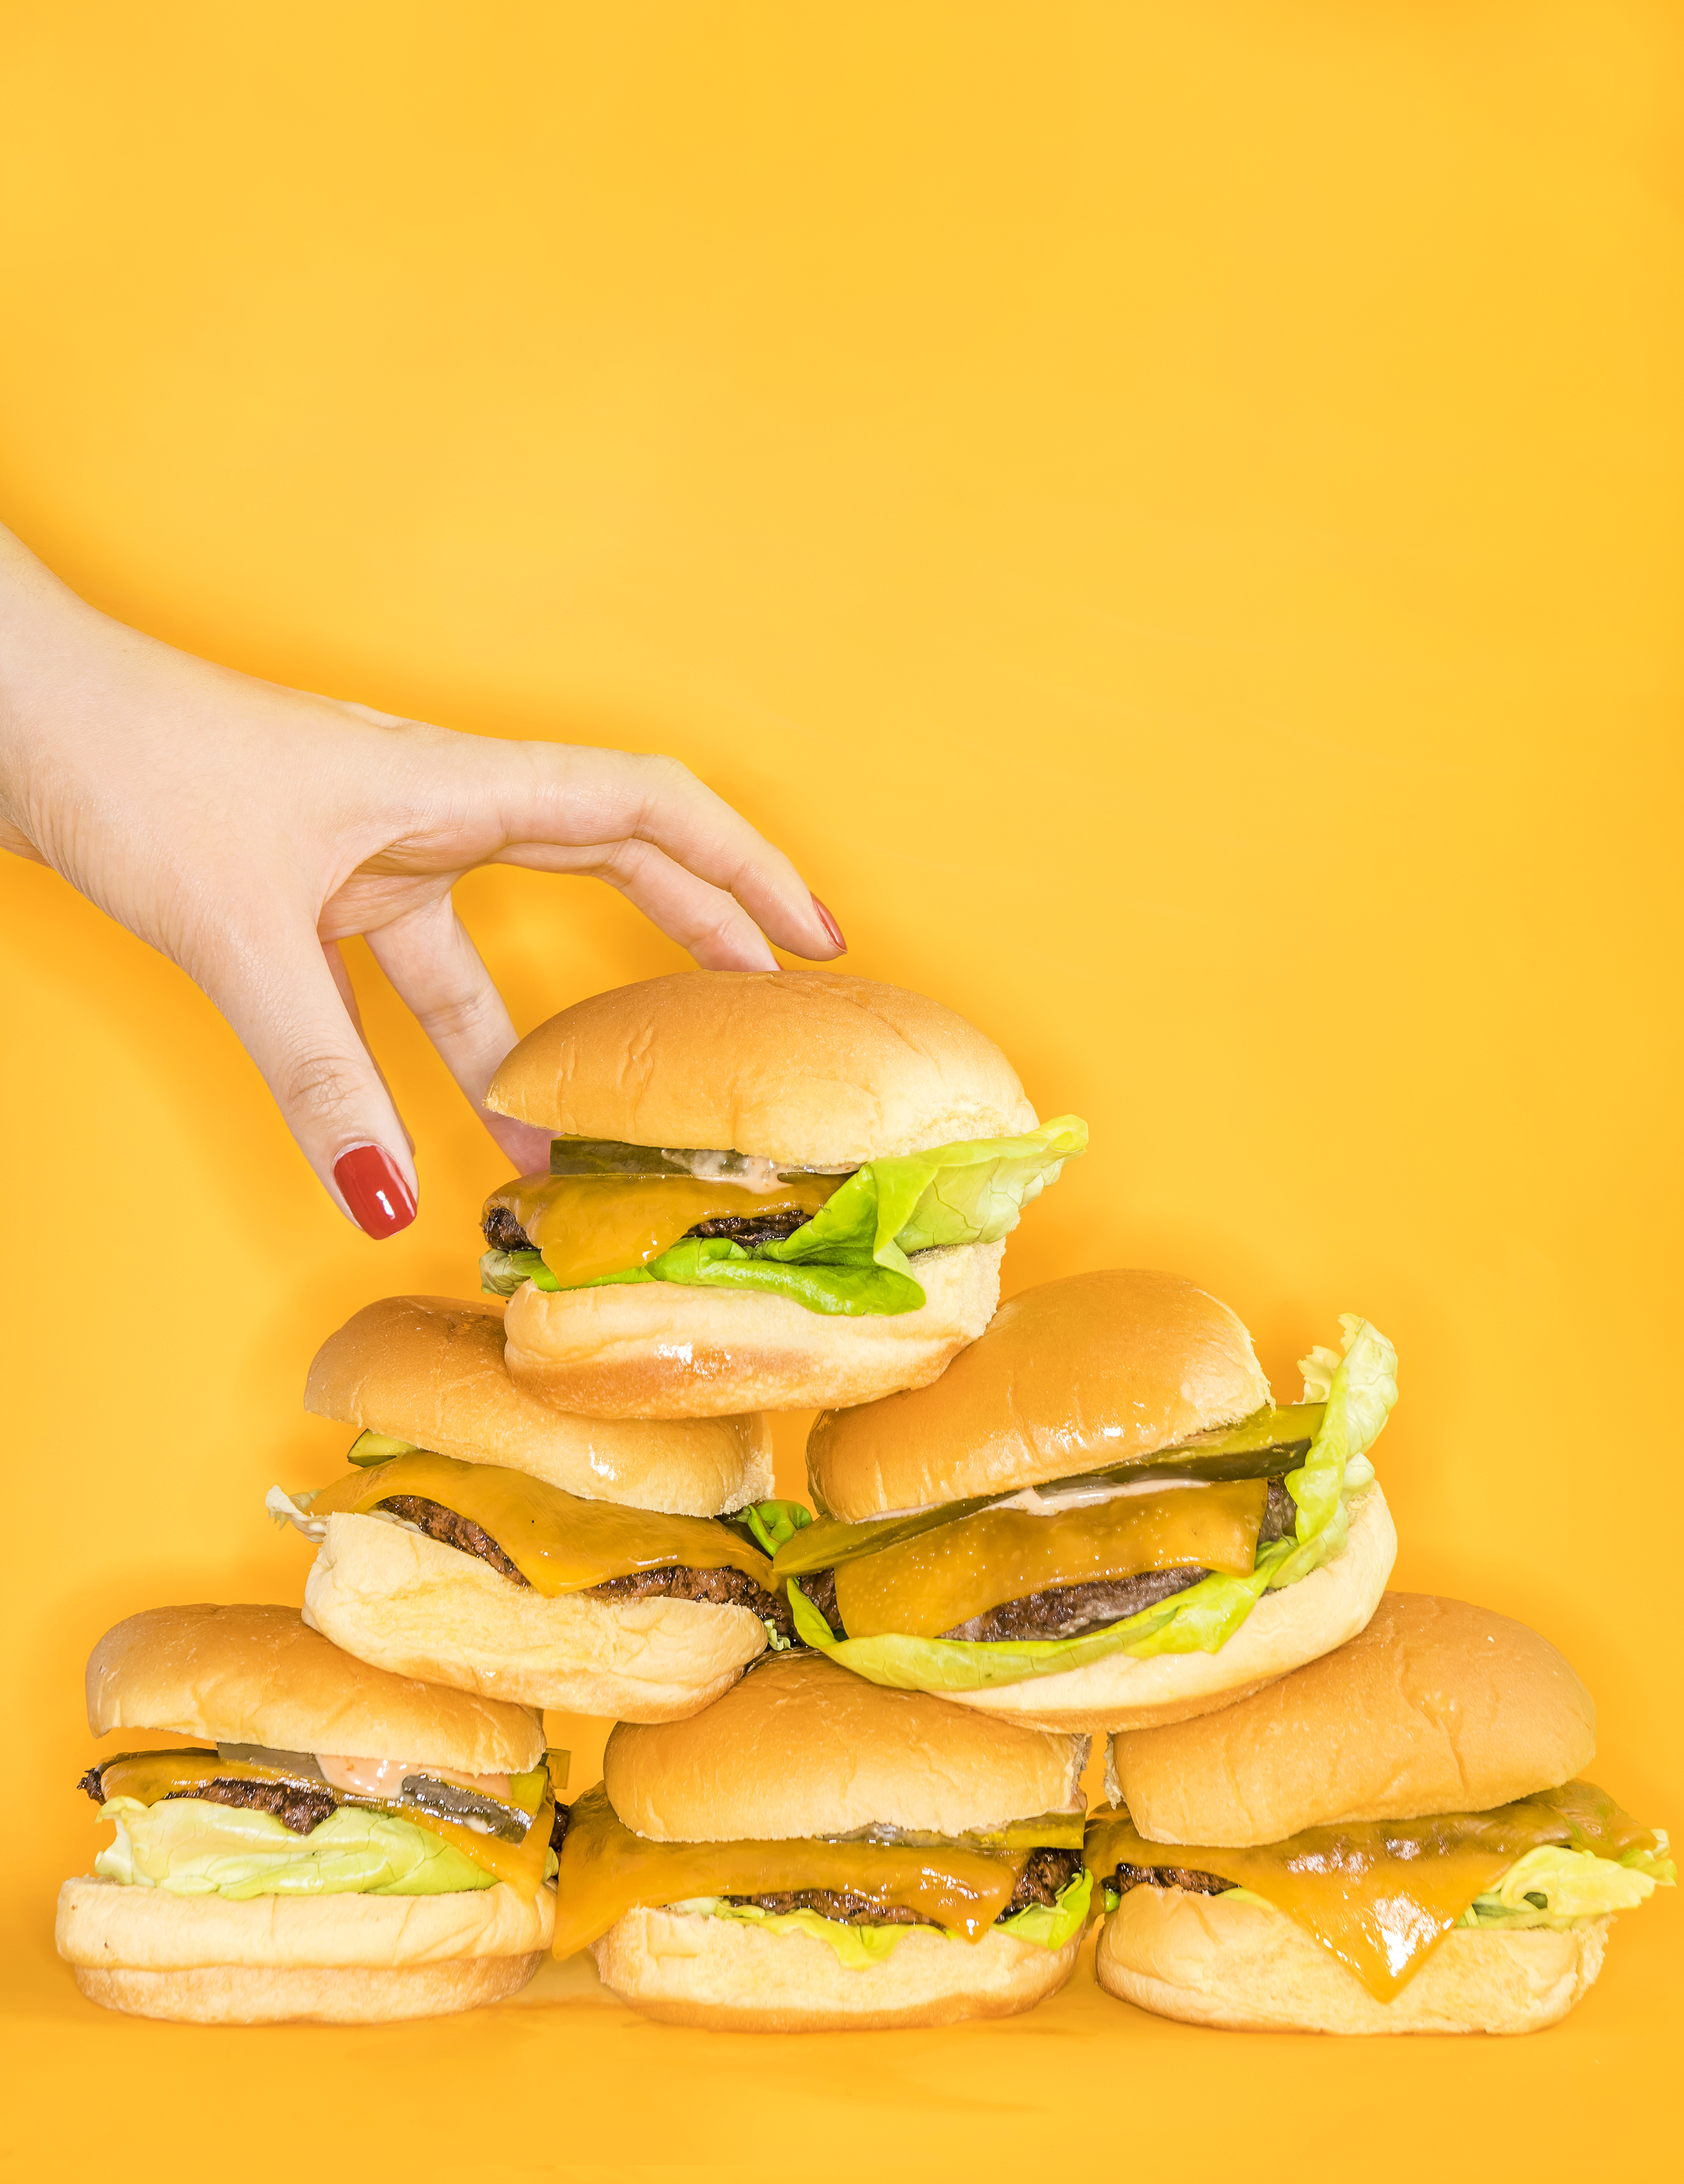 A woman's red-manicured hand reaches for a pile of cheeseburgers on a yellow background.